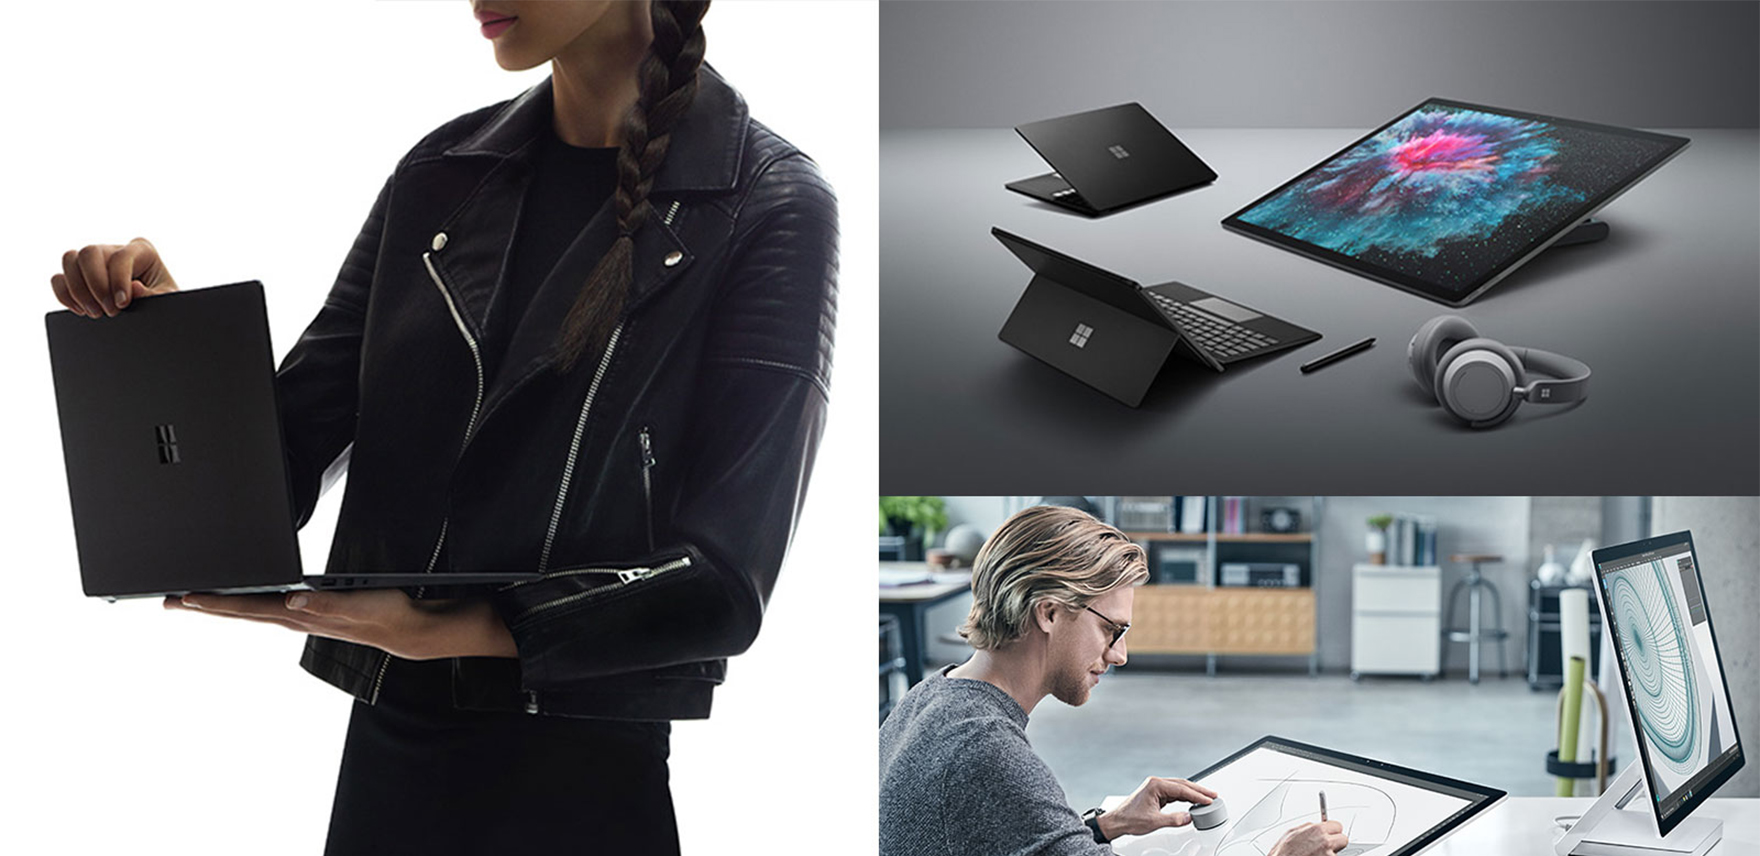 New Surface category dual-screen devices built for mobile productivity Surface a4ff74c59aa5b23444e17e4fcb0308f6.jpg